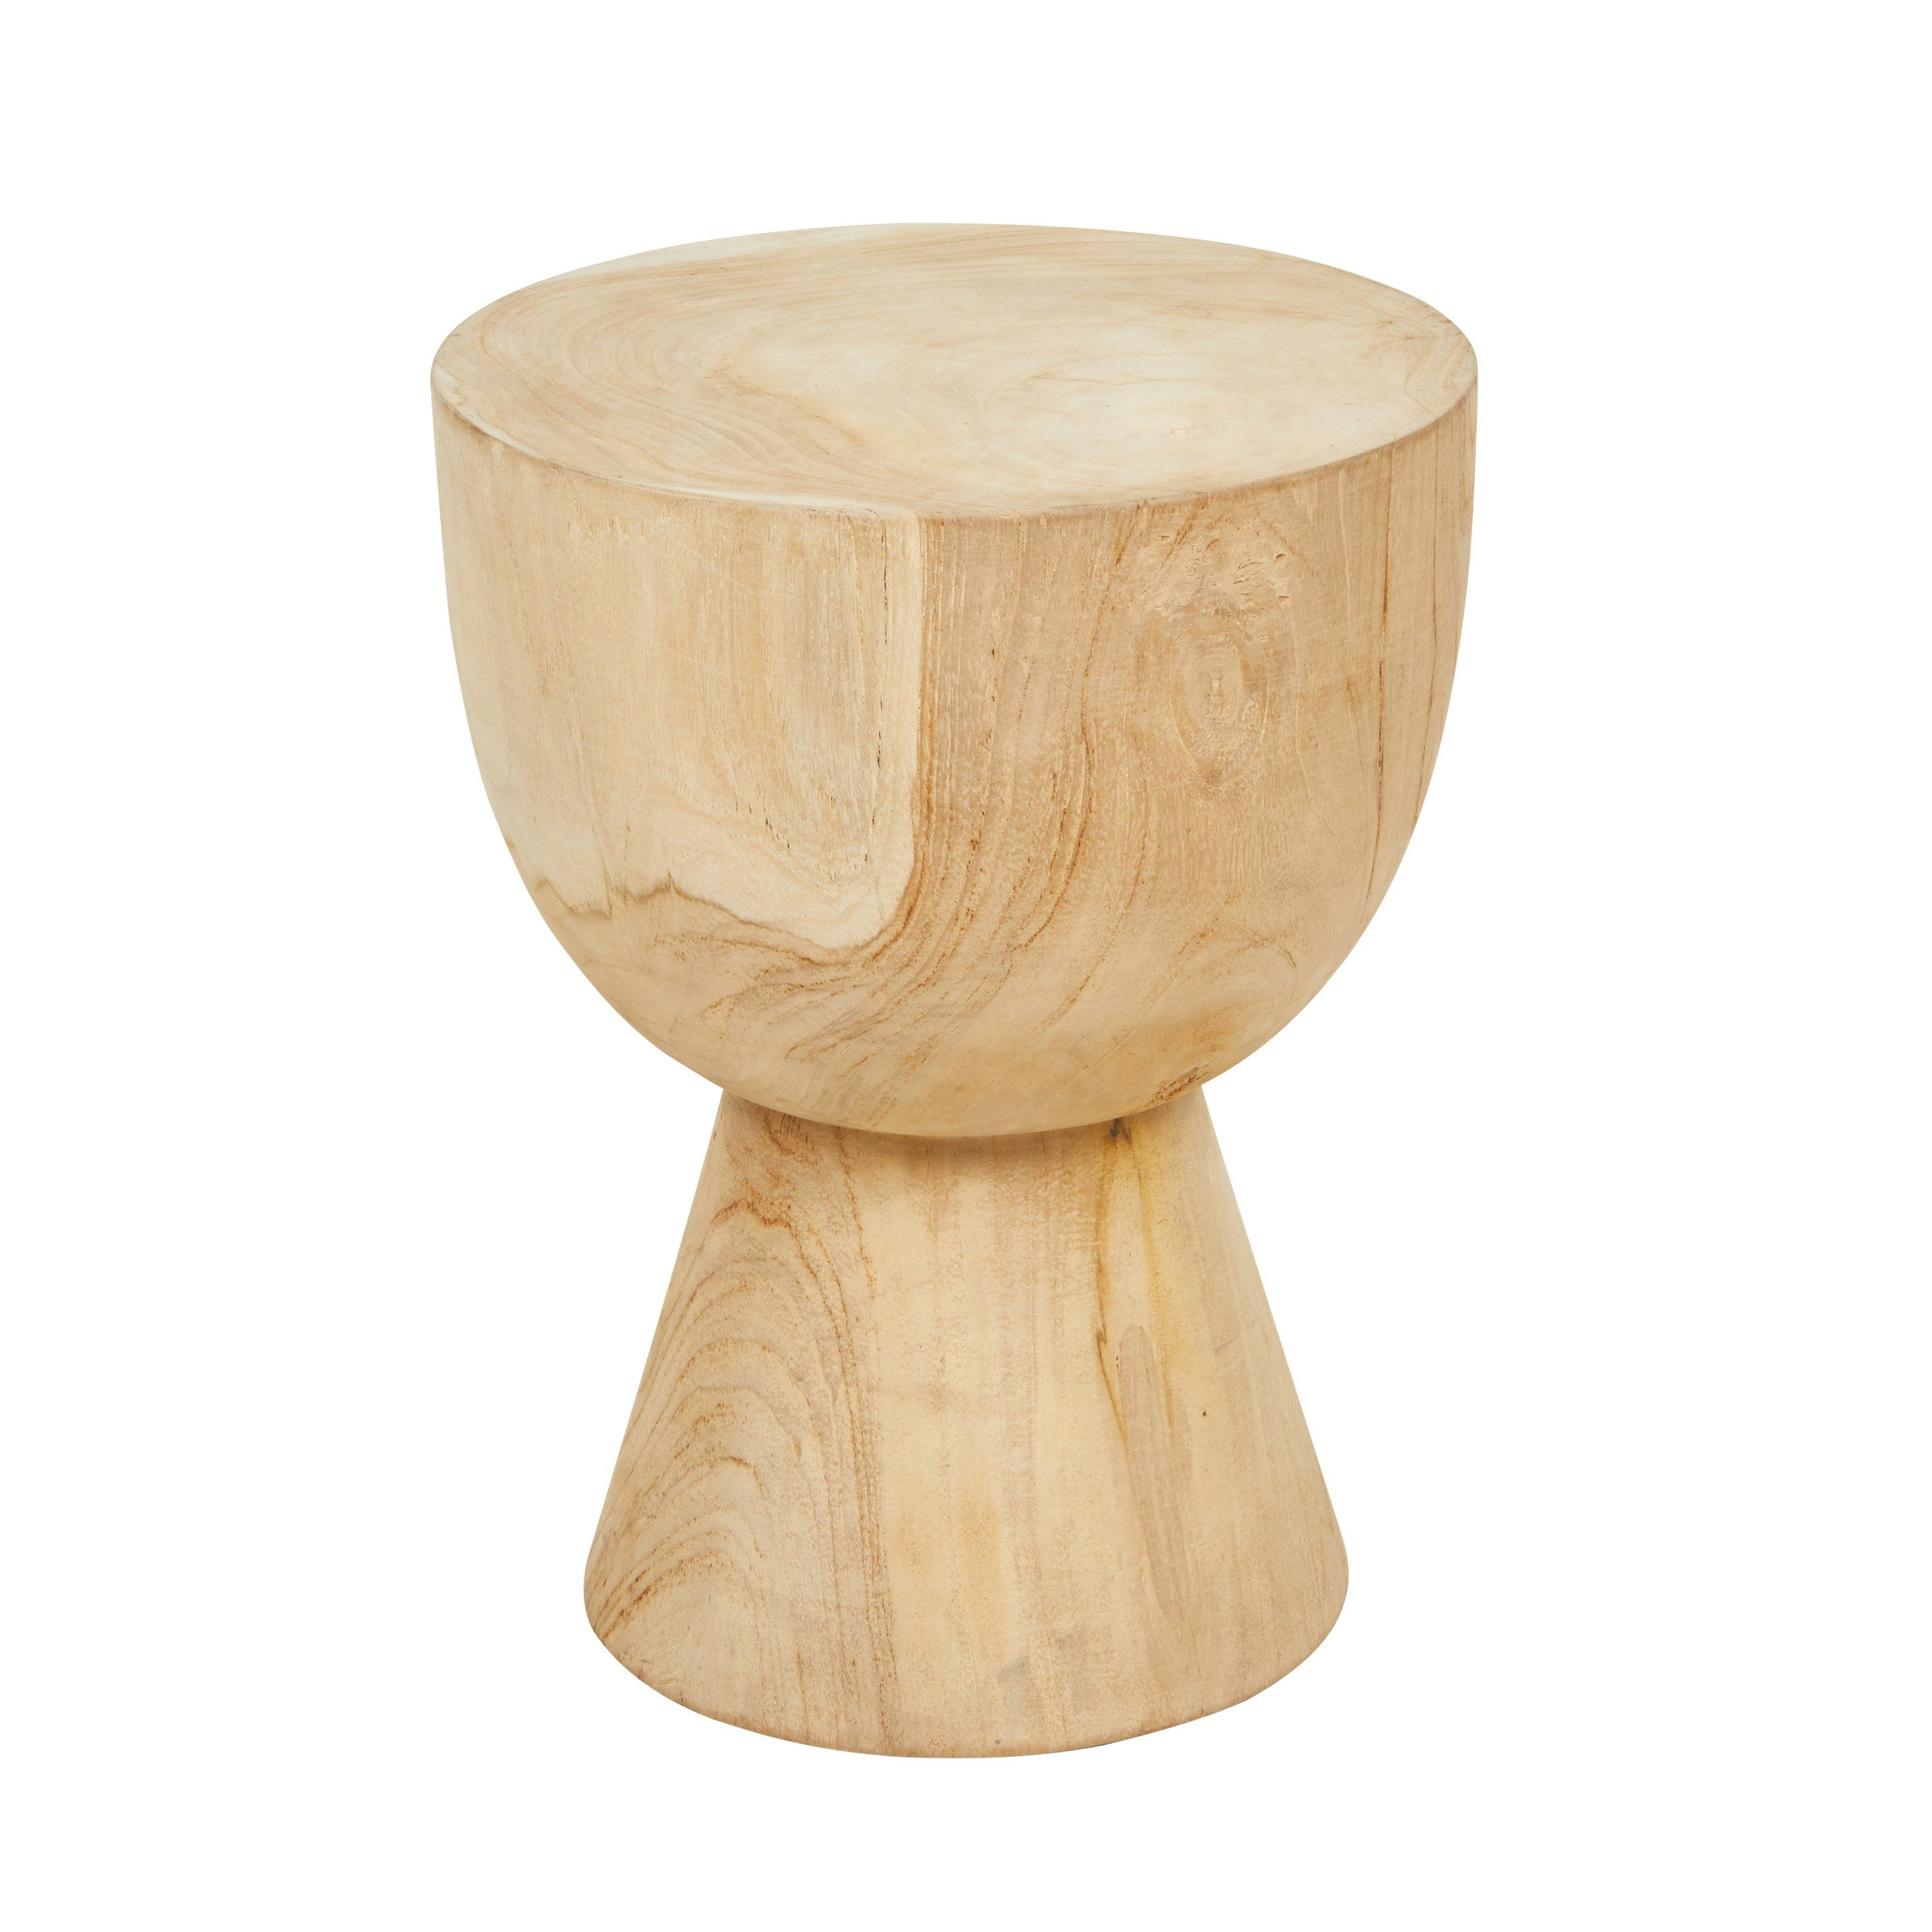 Furniture Hero-Images Dining-Chairs-Benches-and-Stools southport-goblet-stool